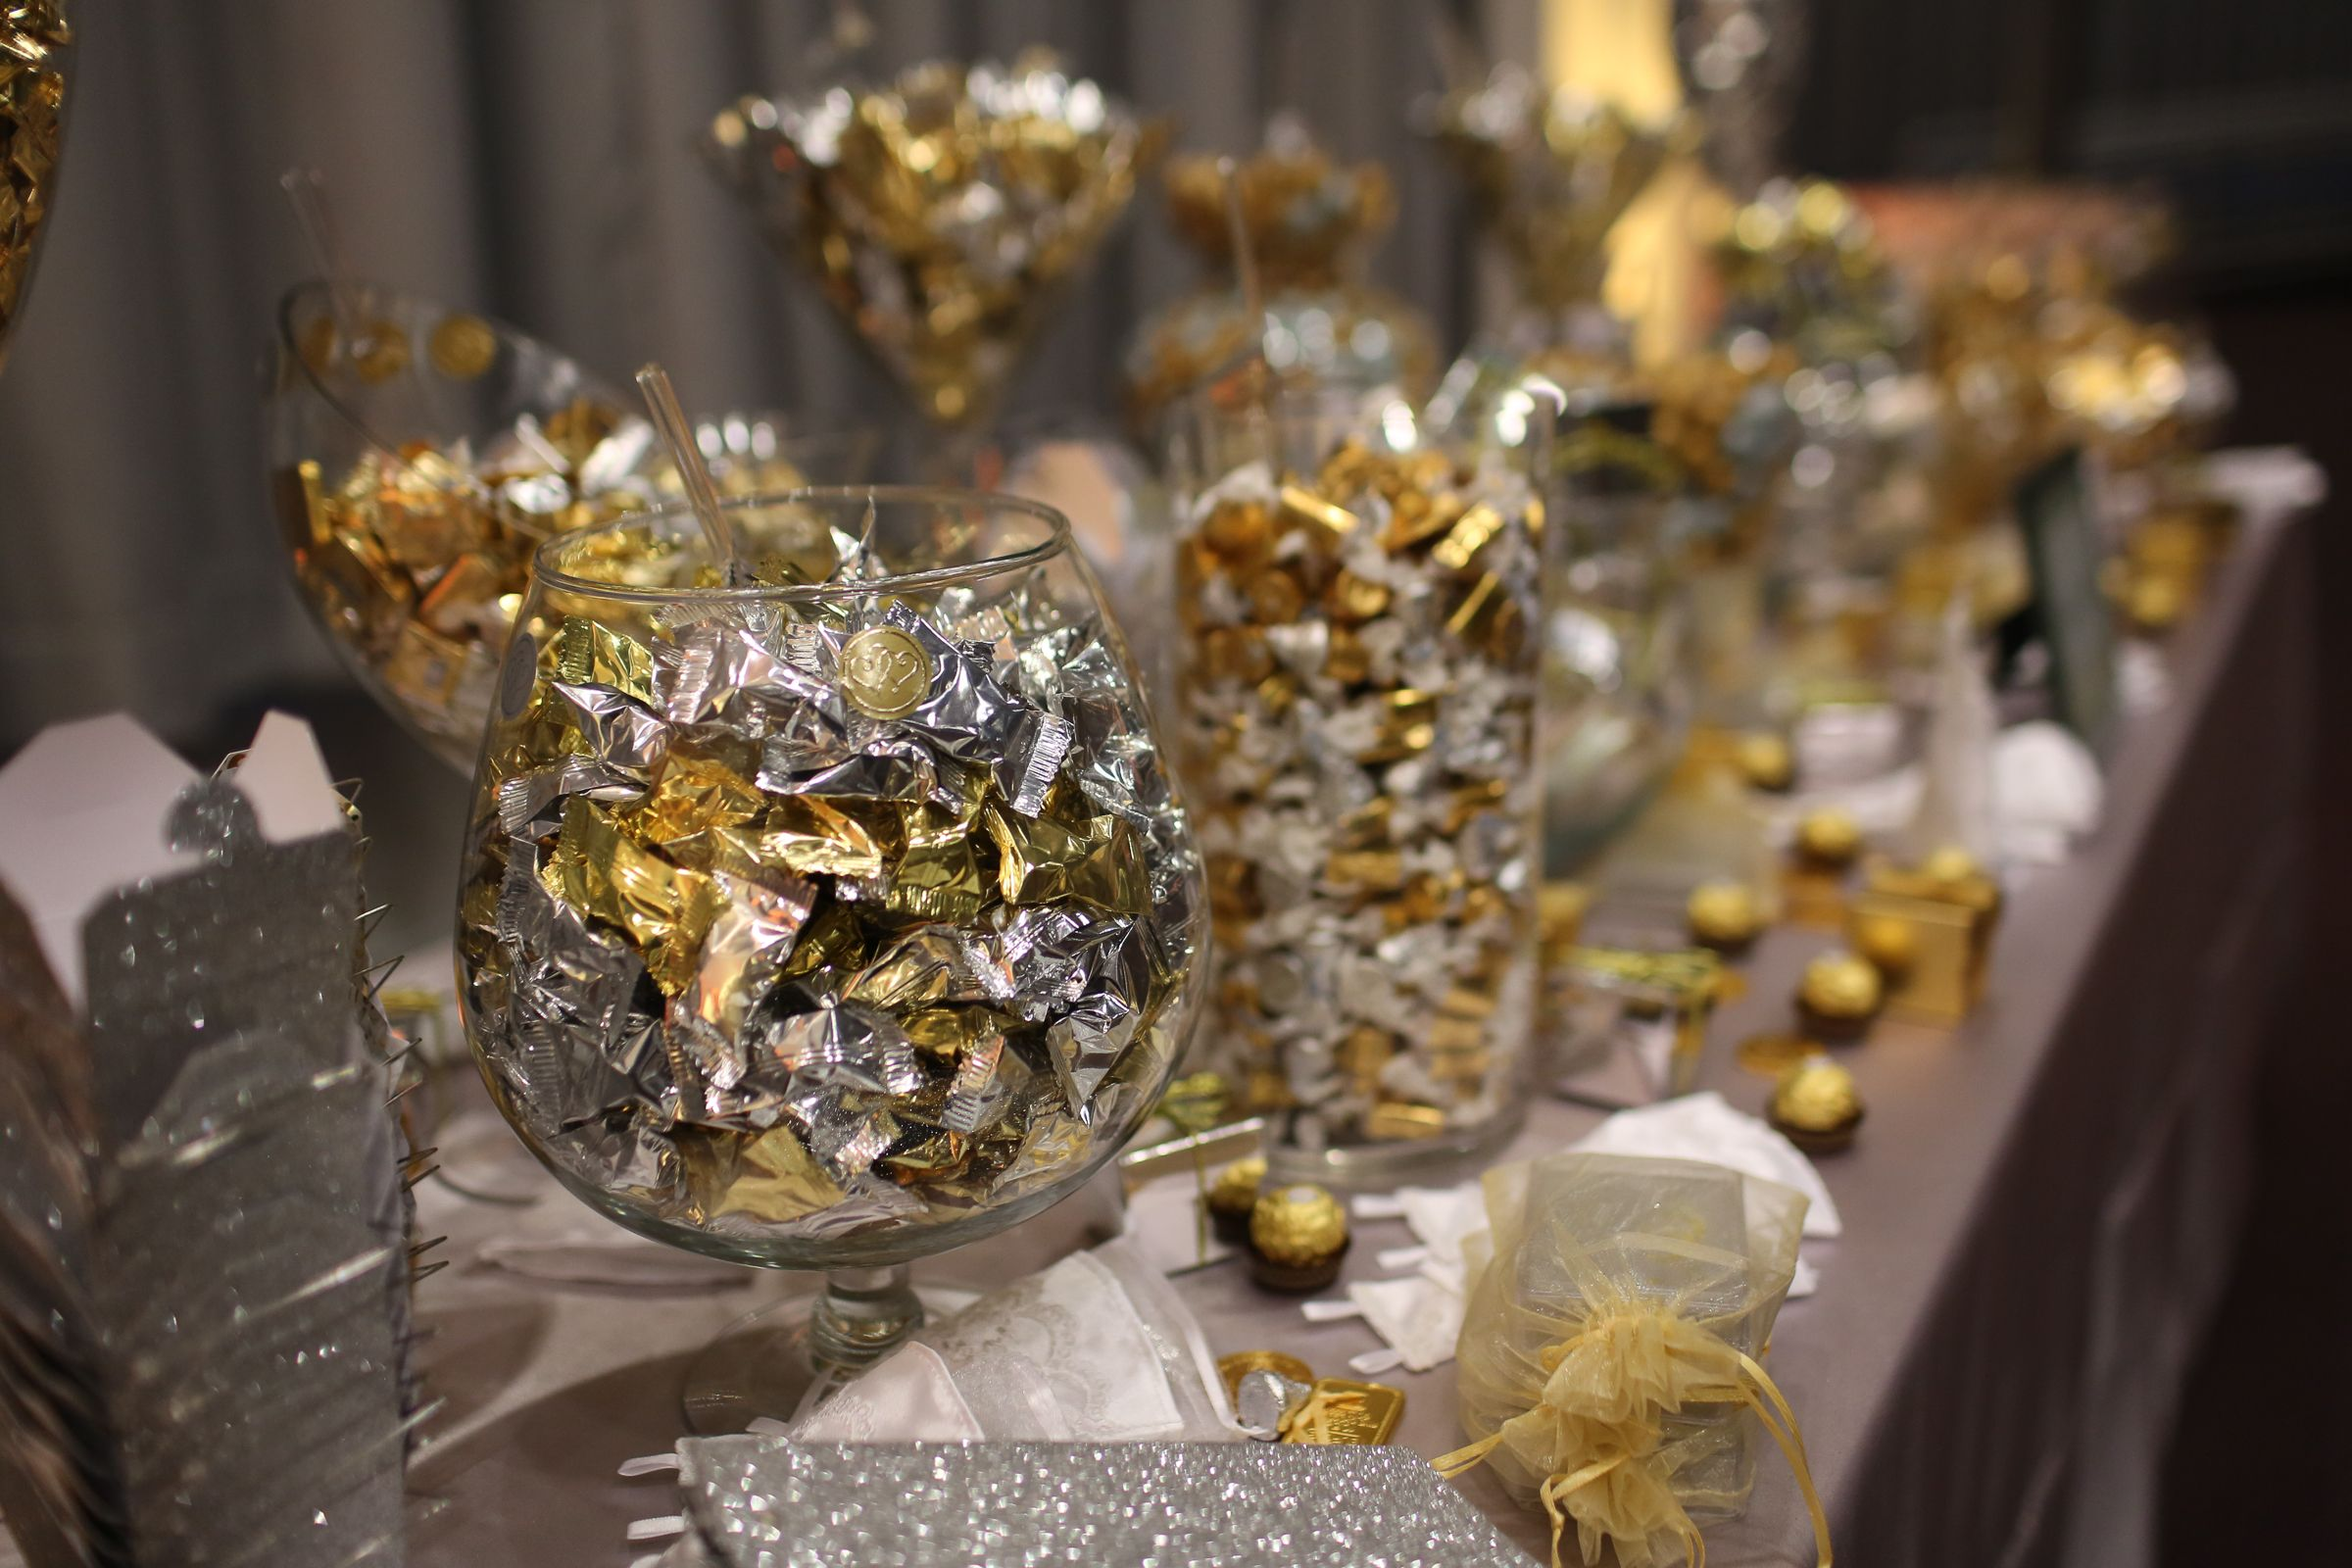 Sweet amp sparkly wedding candy buffet pictures to pin on pinterest - Gold And Silver Candy Buffet